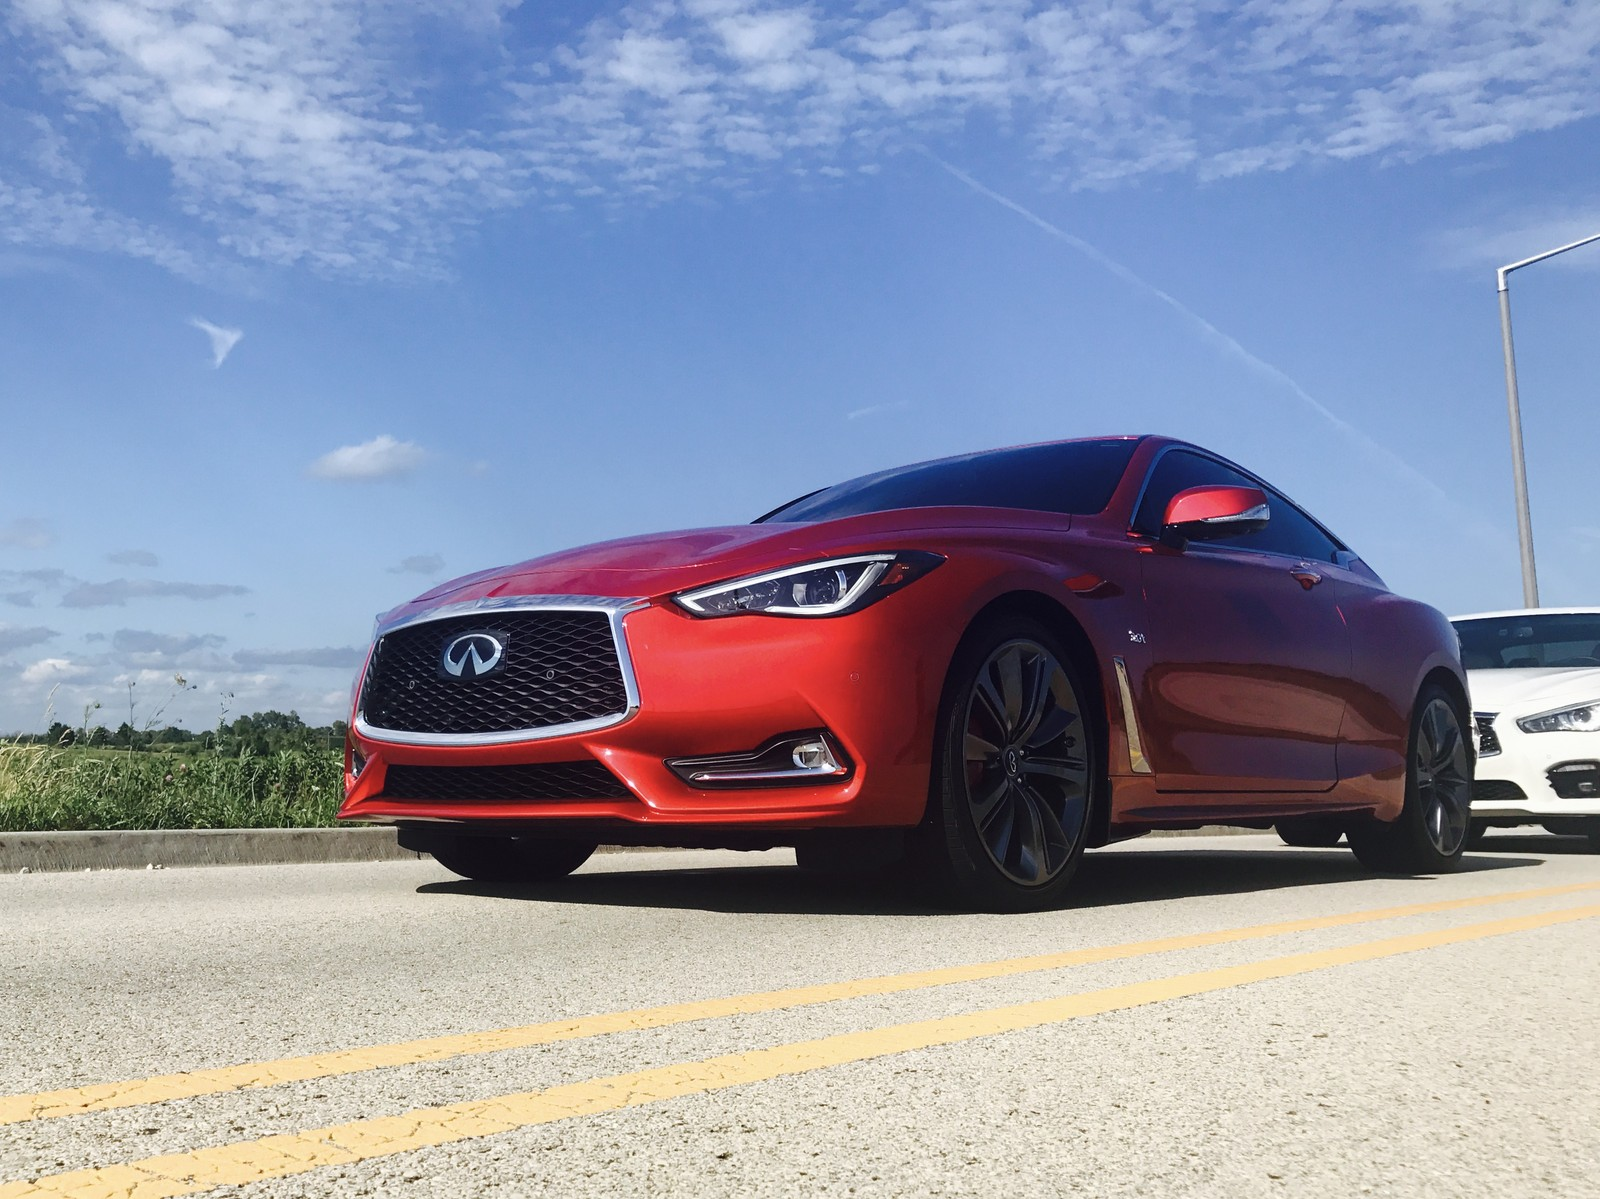 2017 Infiniti Q60 Red Alpha 1 4 Mile Drag Racing Timeslip Specs 0 60